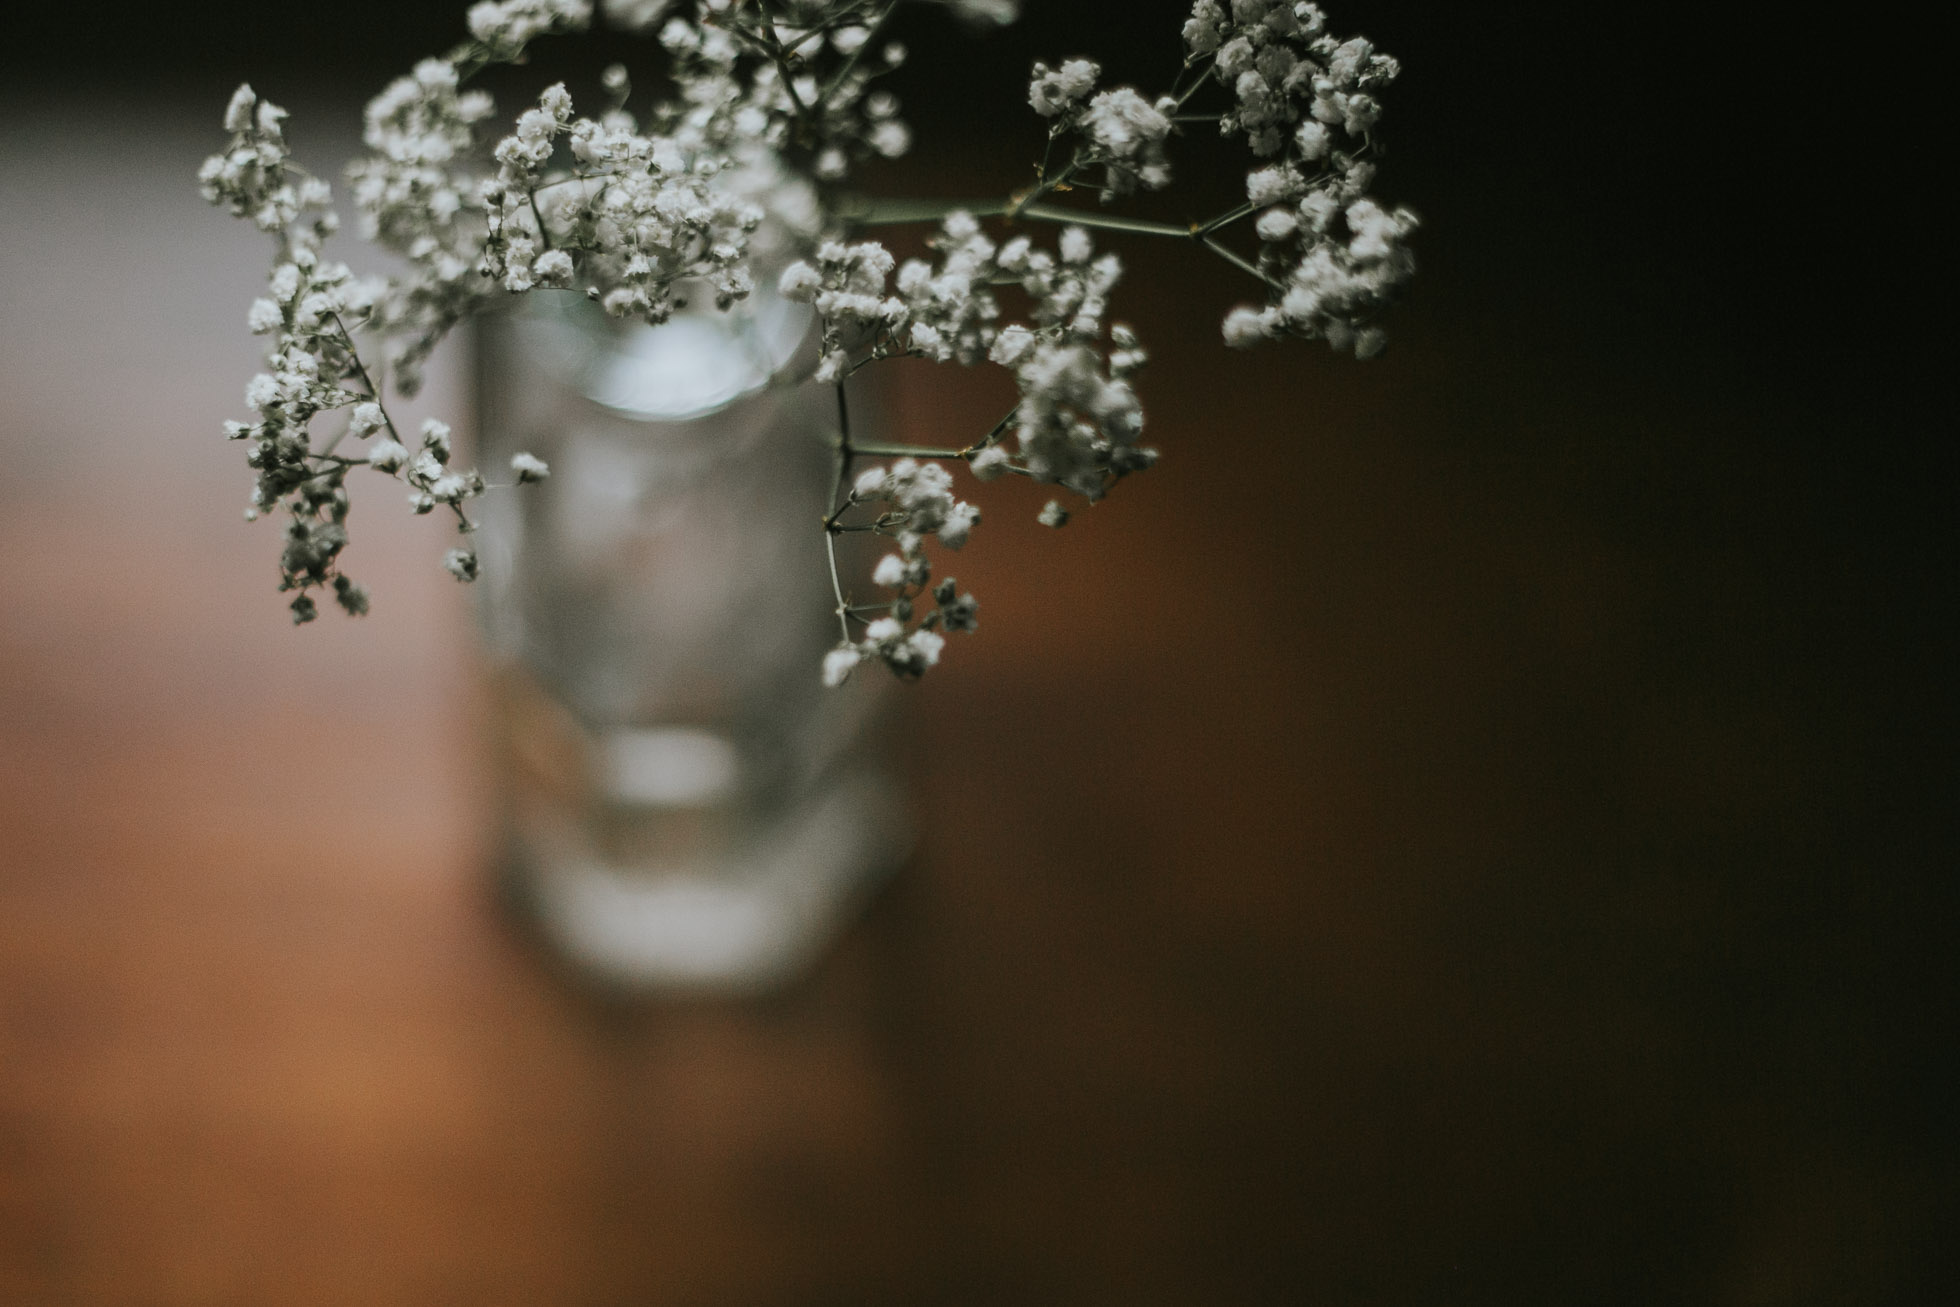 babys breath in a jar by Cassandra Casley